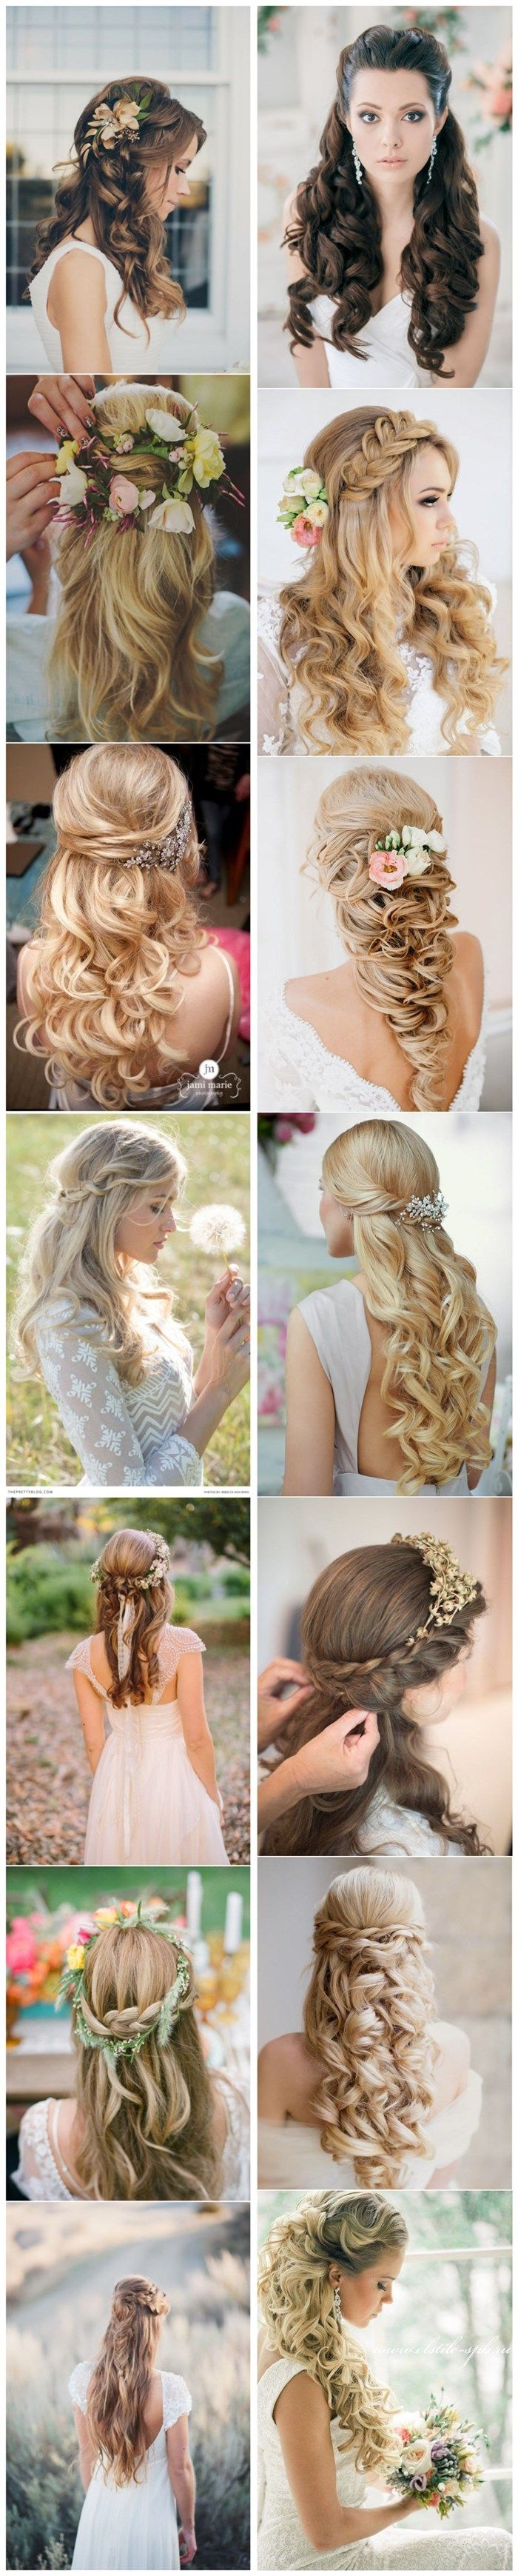 Stunning Wedding Hairdo Styles #dream #wedding #inspiration